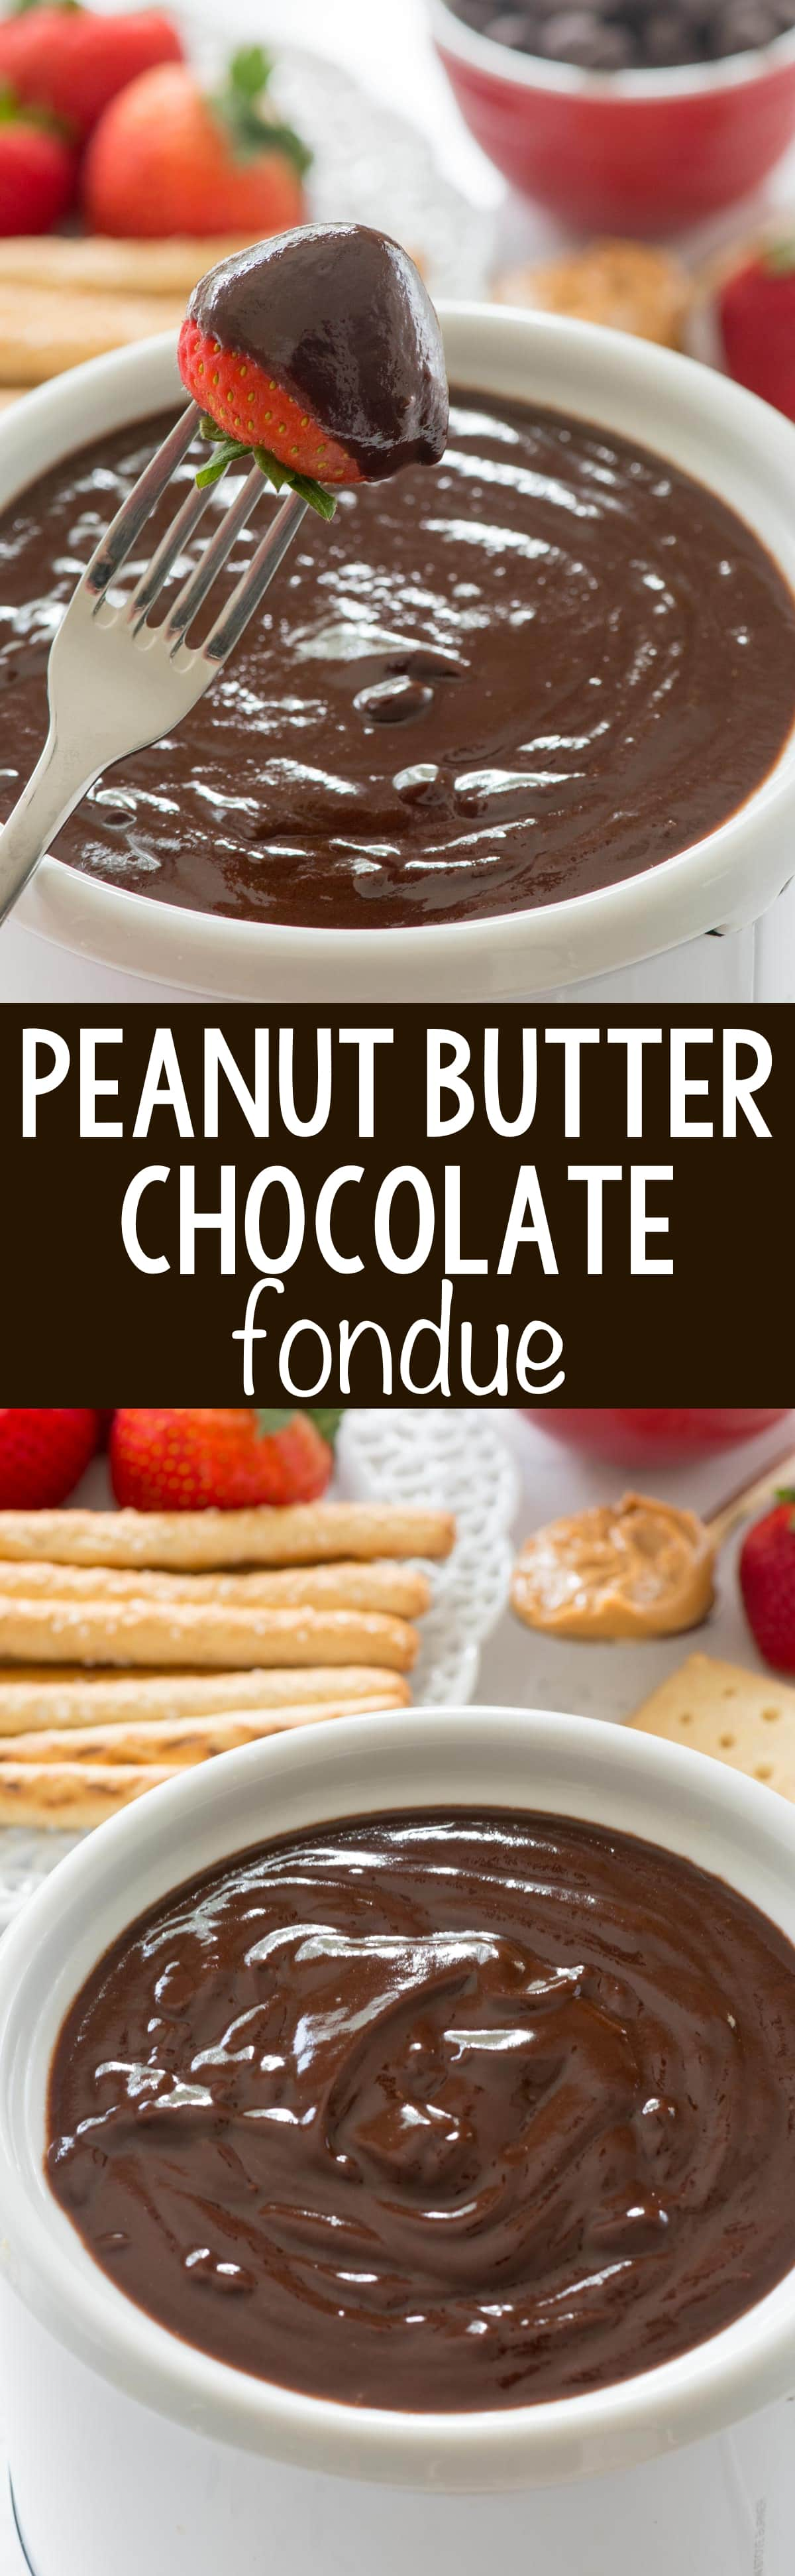 Peanut Butter Chocolate Fondue - Crazy for Crust